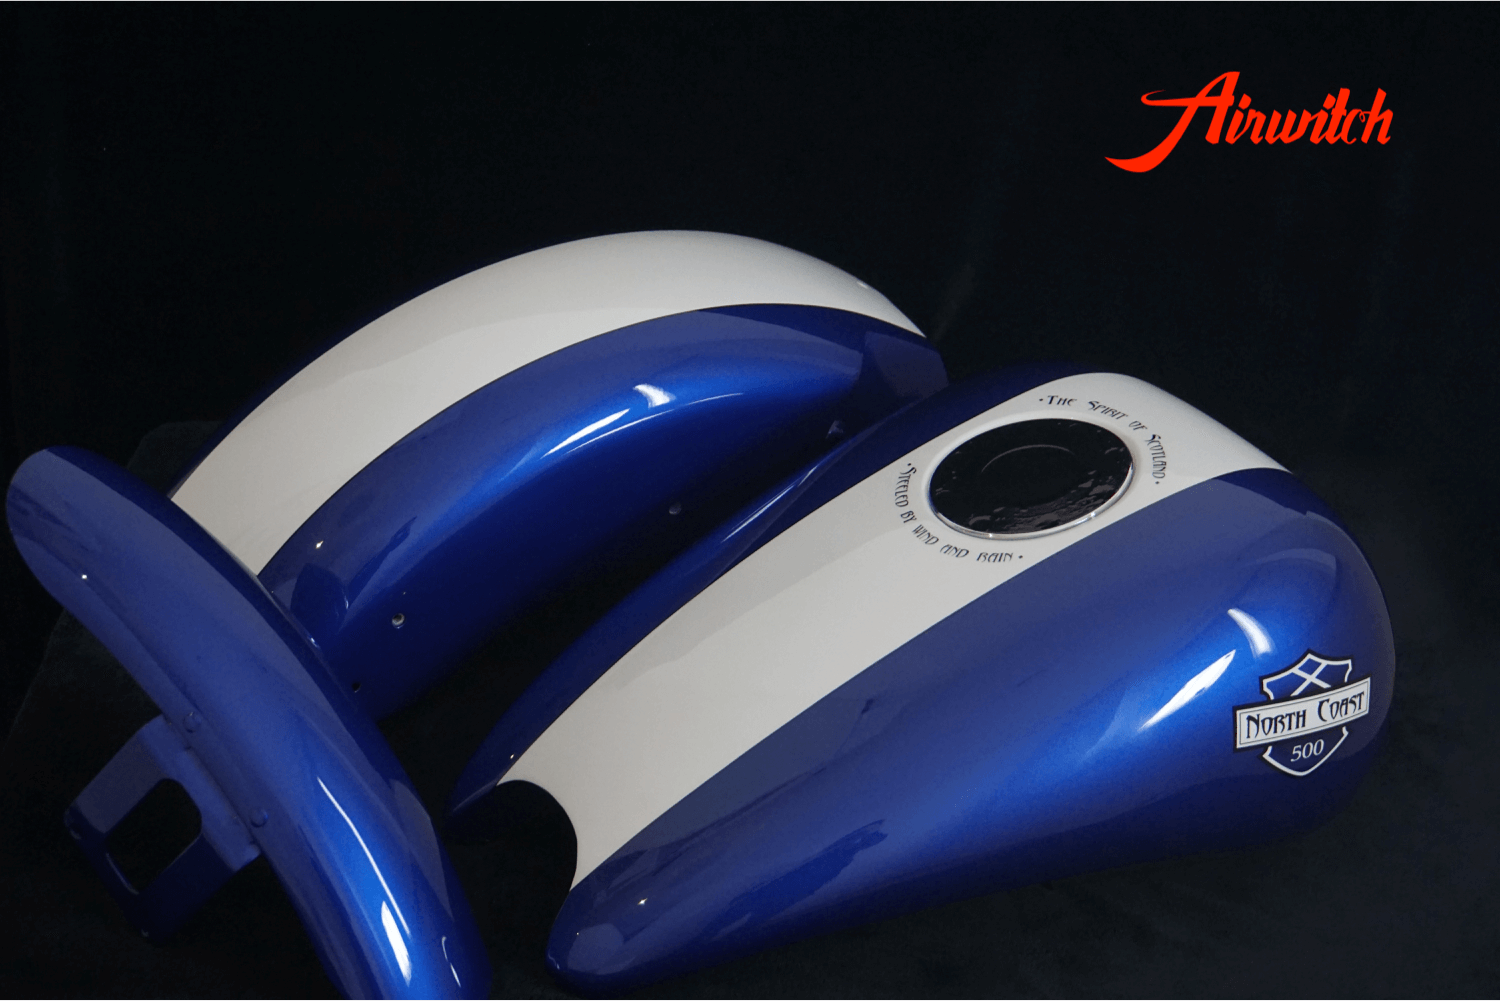 Custom Paint Harley Davidson Sportster Tank Metallic blau Scotland mit Airbrush Route North Coast 500